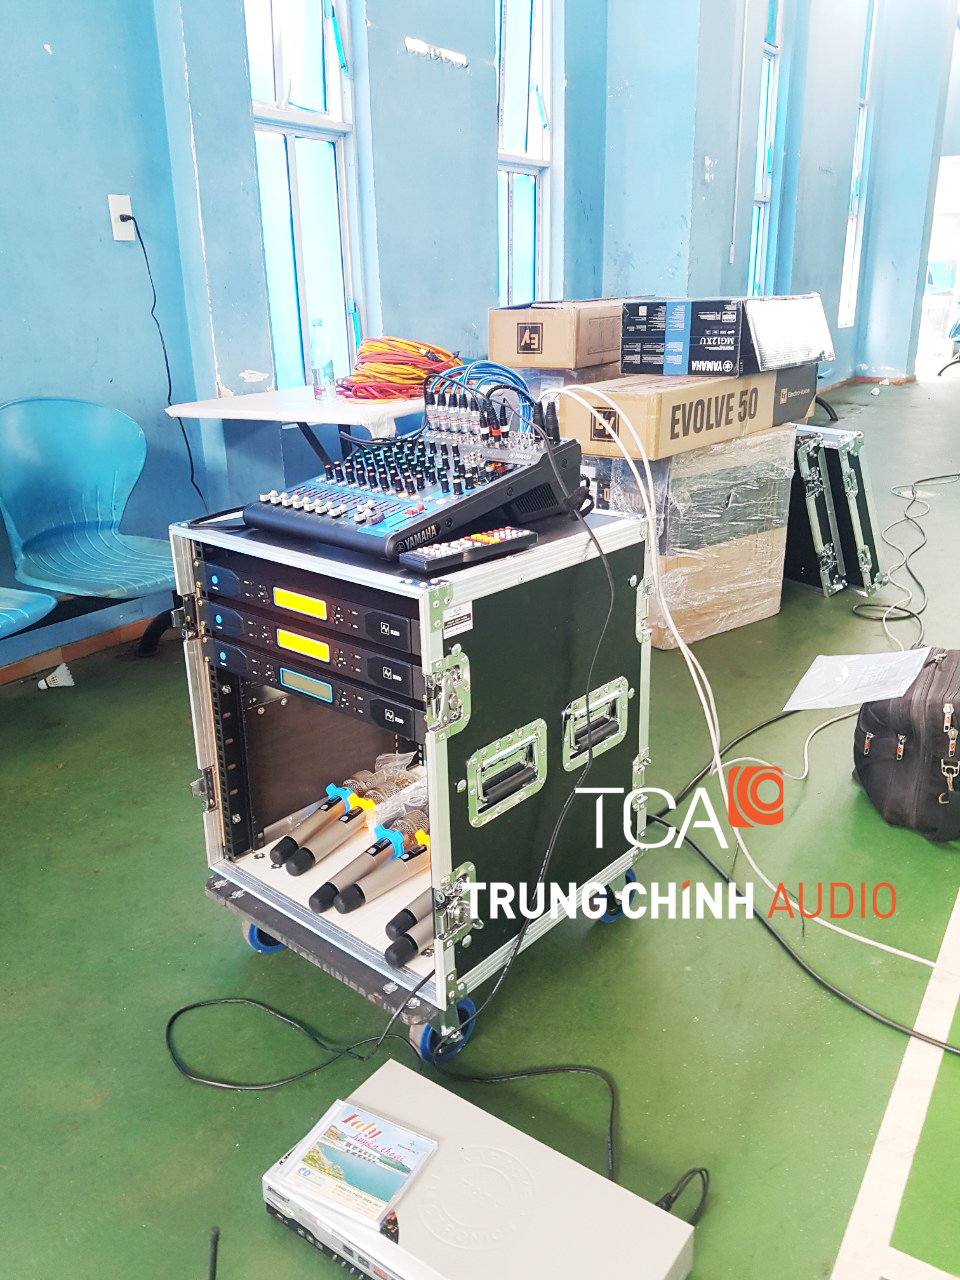 tca-lap-dat-am-thanh-he-thong-thuy-dien-ialy-006